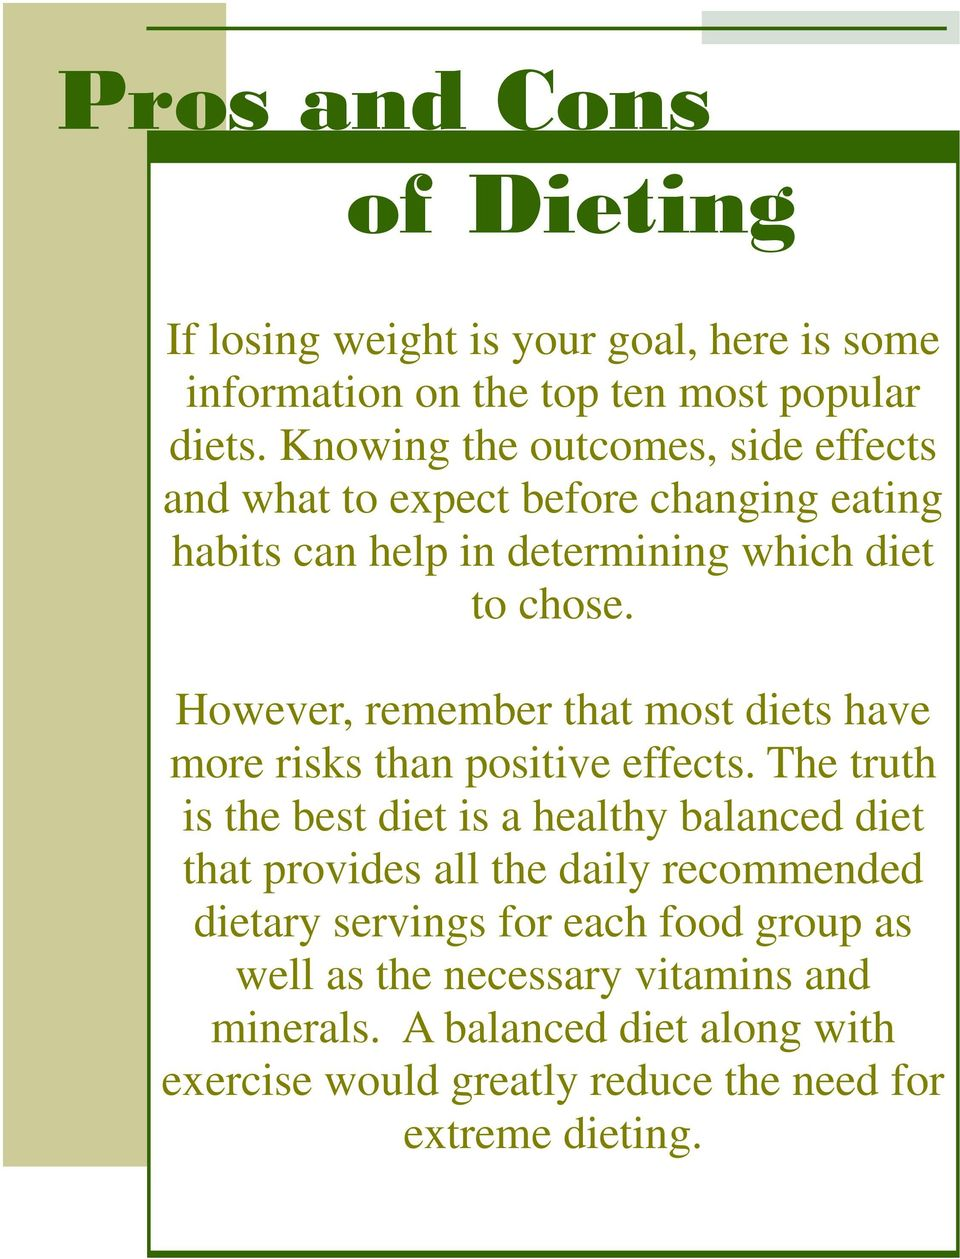 However, remember that most diets have more risks than positive effects.